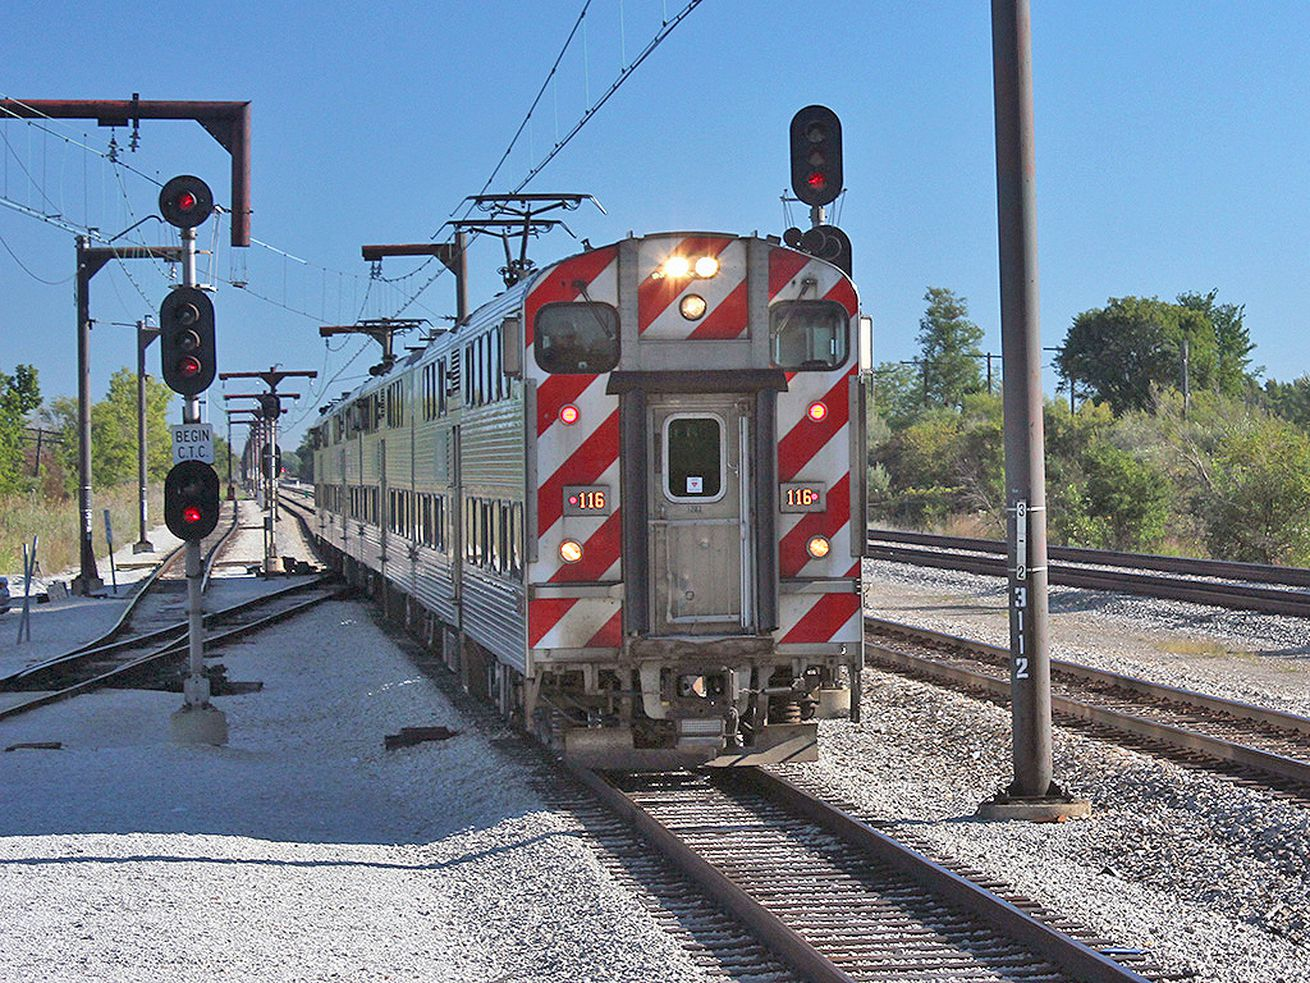 Metra Electric service was delayed Nov. 16, 2020, after a person was hit by a train near the Ivanhoe station in Riverdale.